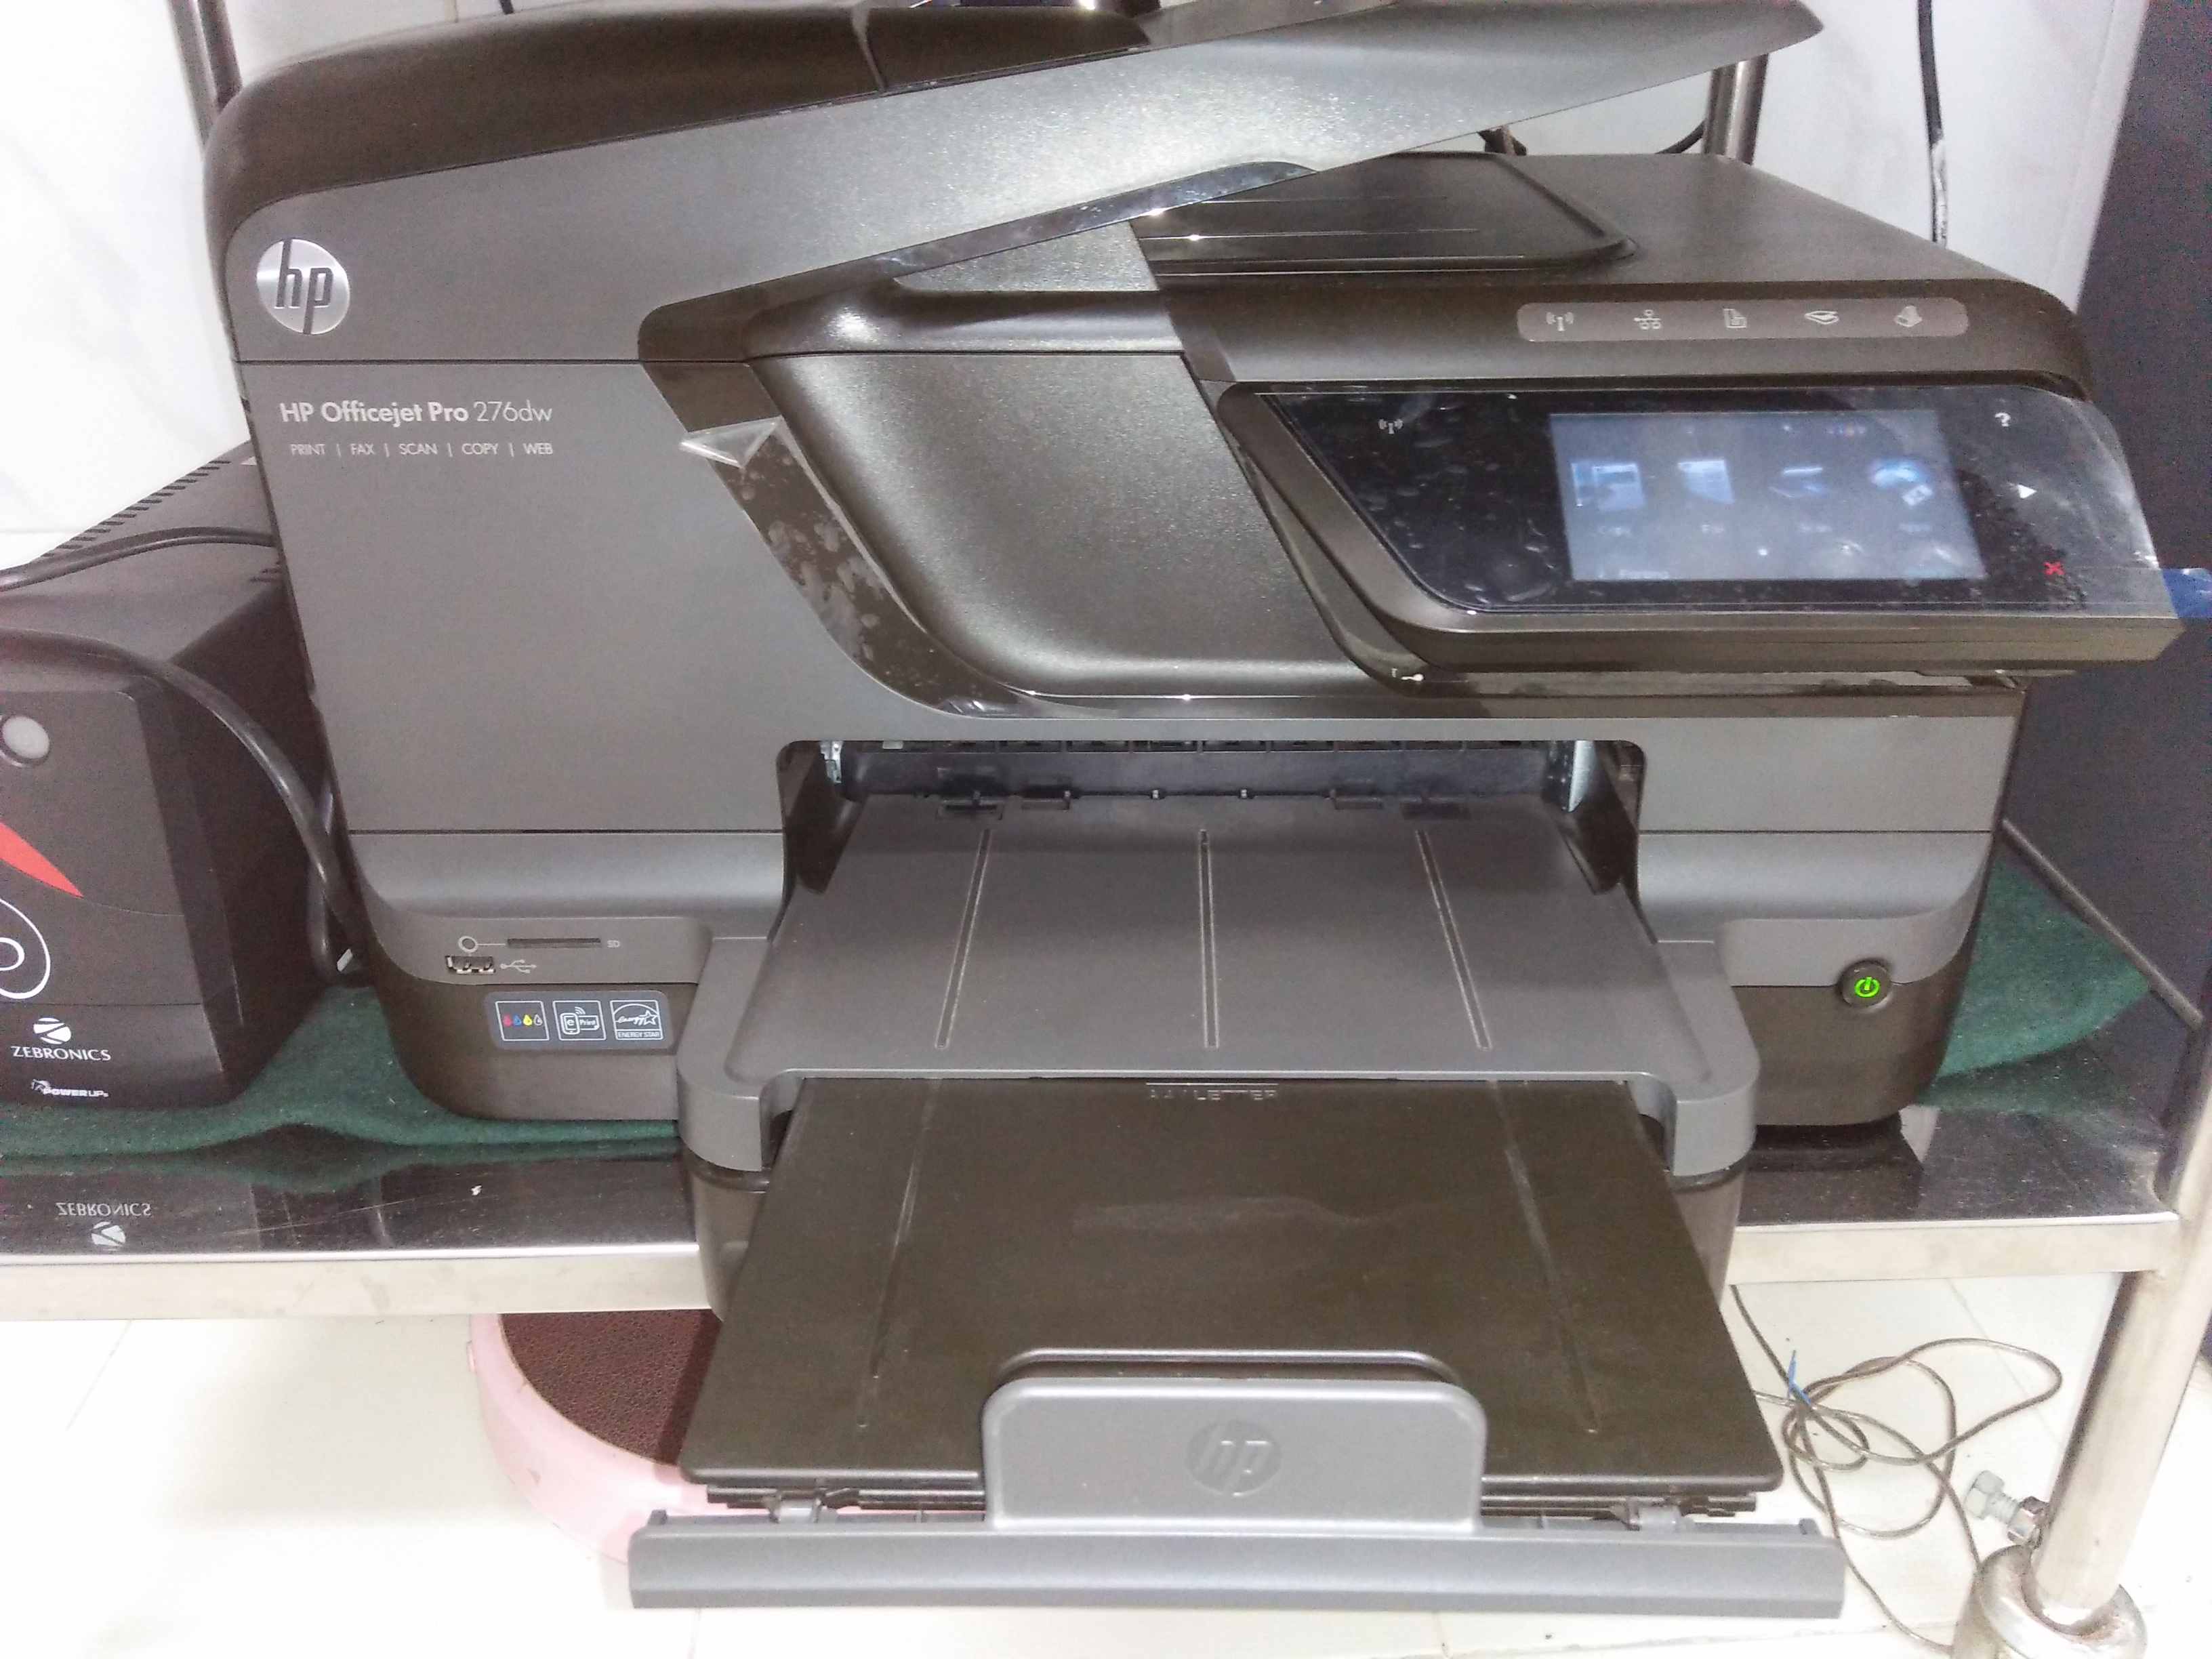 Hp Office Jet Pro 276dw Wi Fi All In One Officejet 7110 Printer Print Web Wifi But Every On Can Use Only A4 Size Paper For Printing And Colour Xerox You Operate It With Your Get A Easily